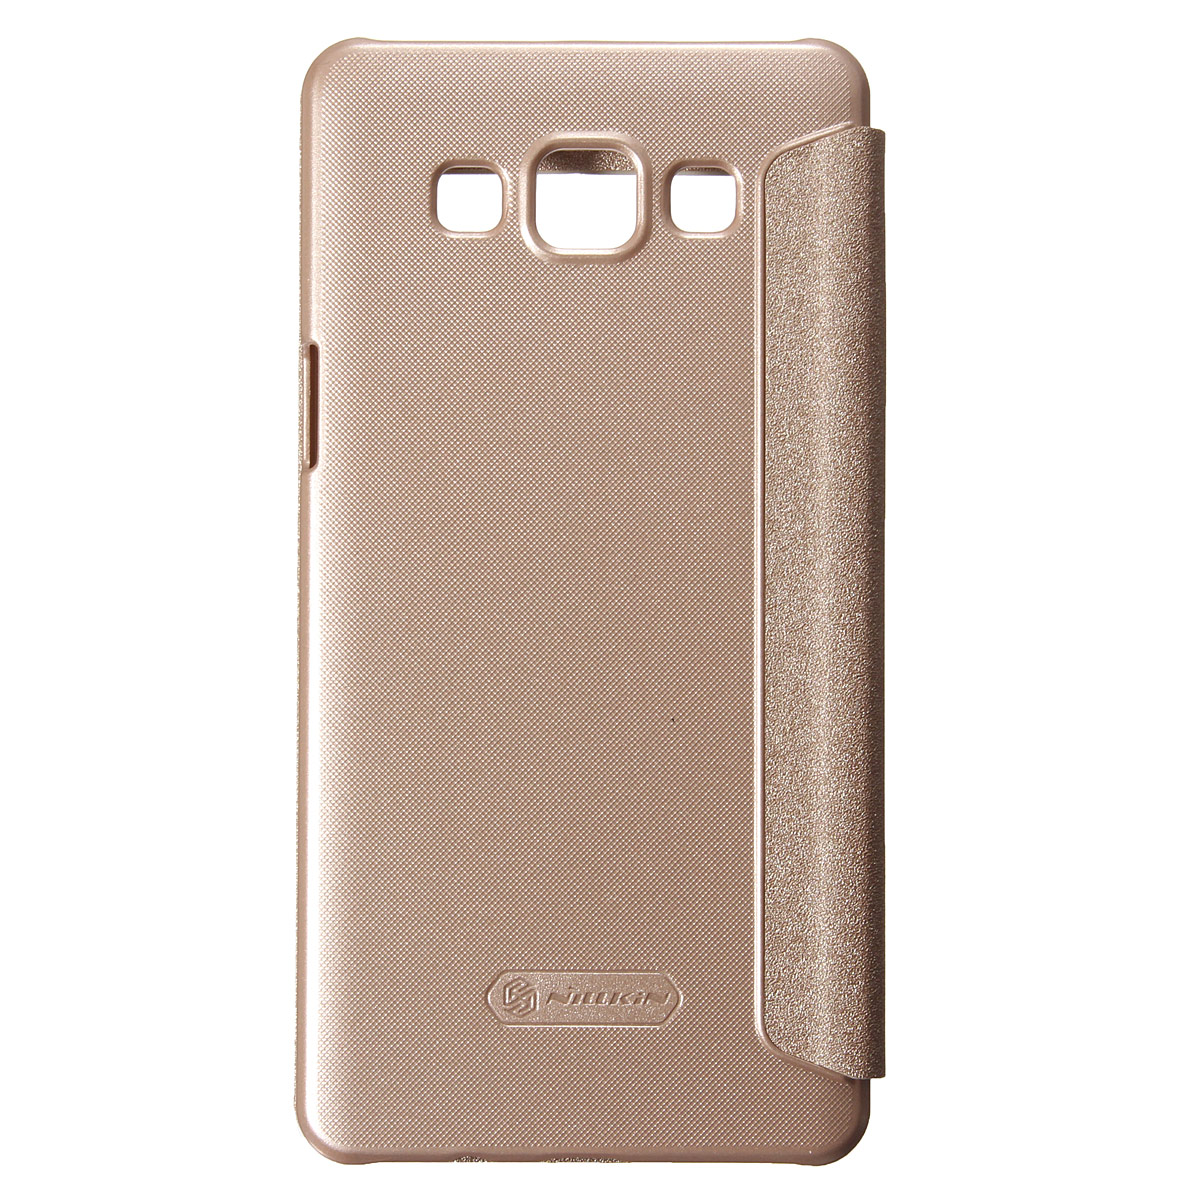 Dign Nillkin Sparkle Pu Leather Window Case Cover For Samsung